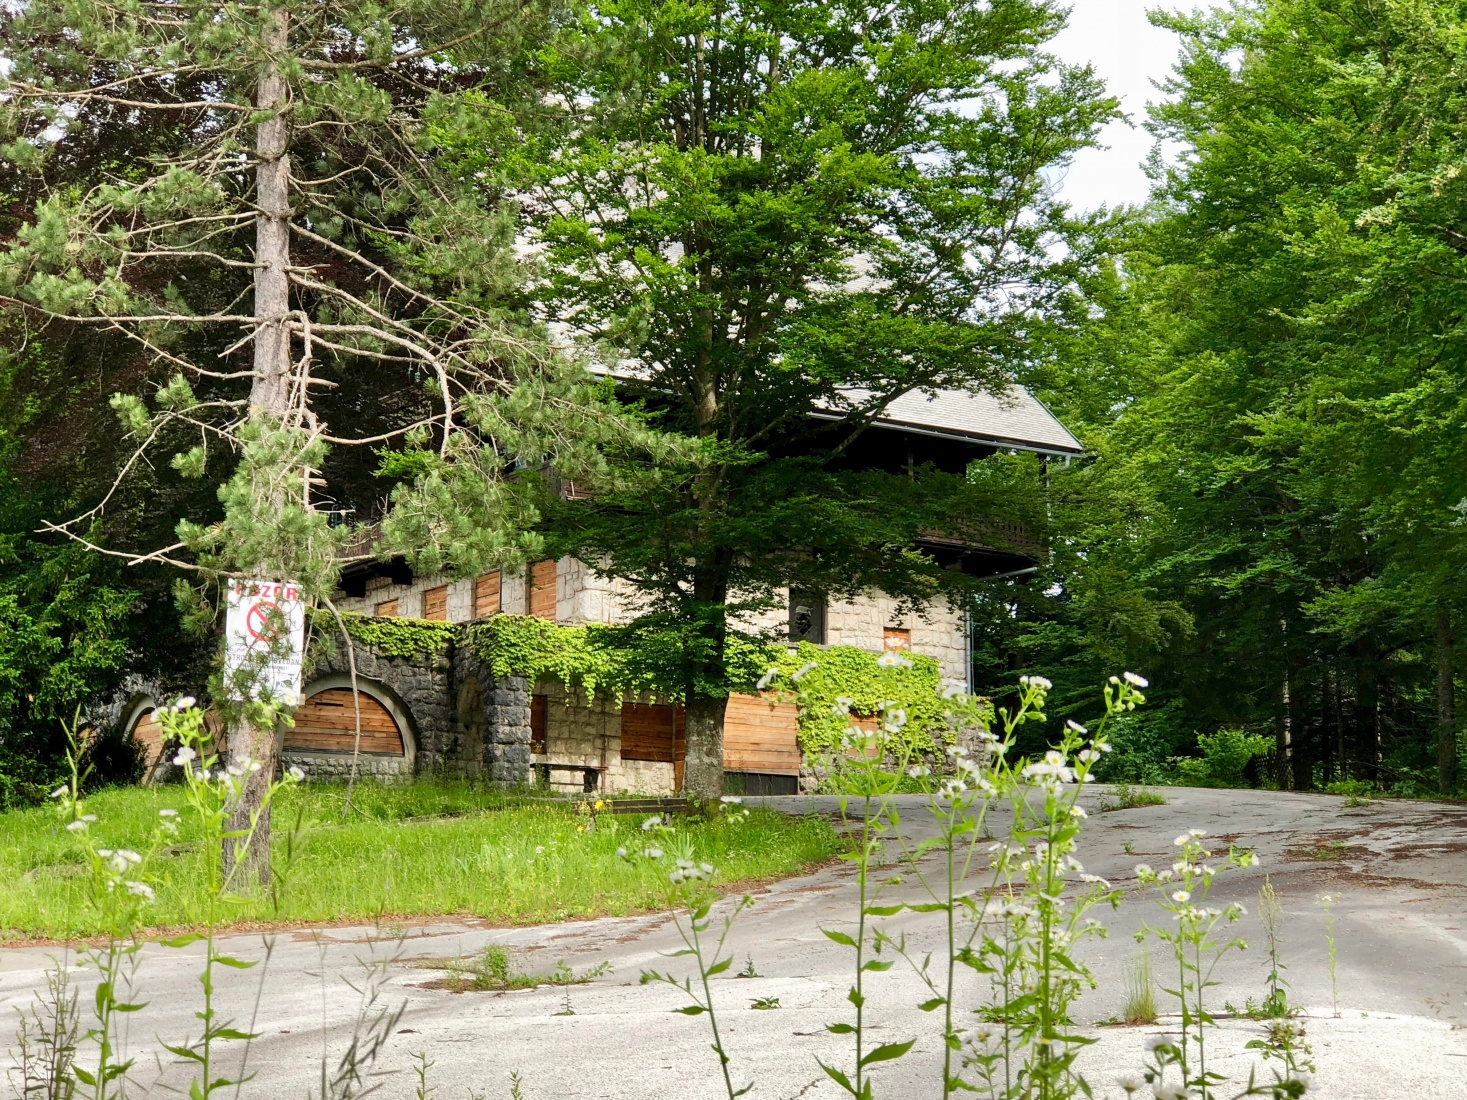 English author Agatha Christie stayed at Lake Bohinj, Slovenia, in the 1960s. Her favorite hotel is now closed down and abandoned.